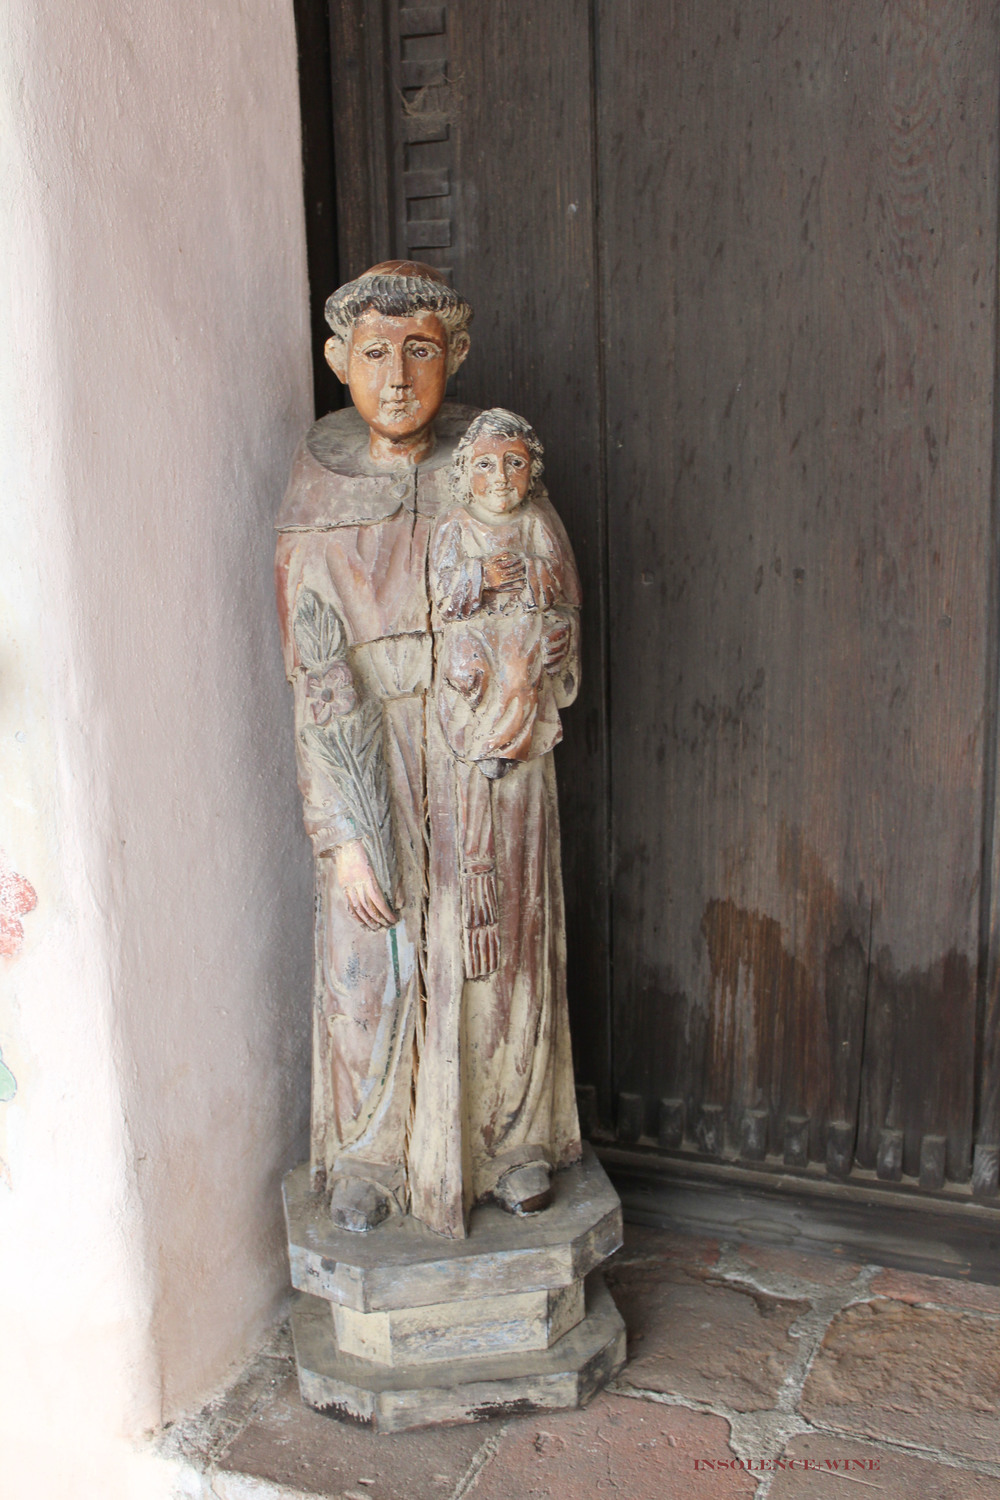 Wooden statuette of St. Anthony de Padua on the steps outside of the church, facing into the courtyard.